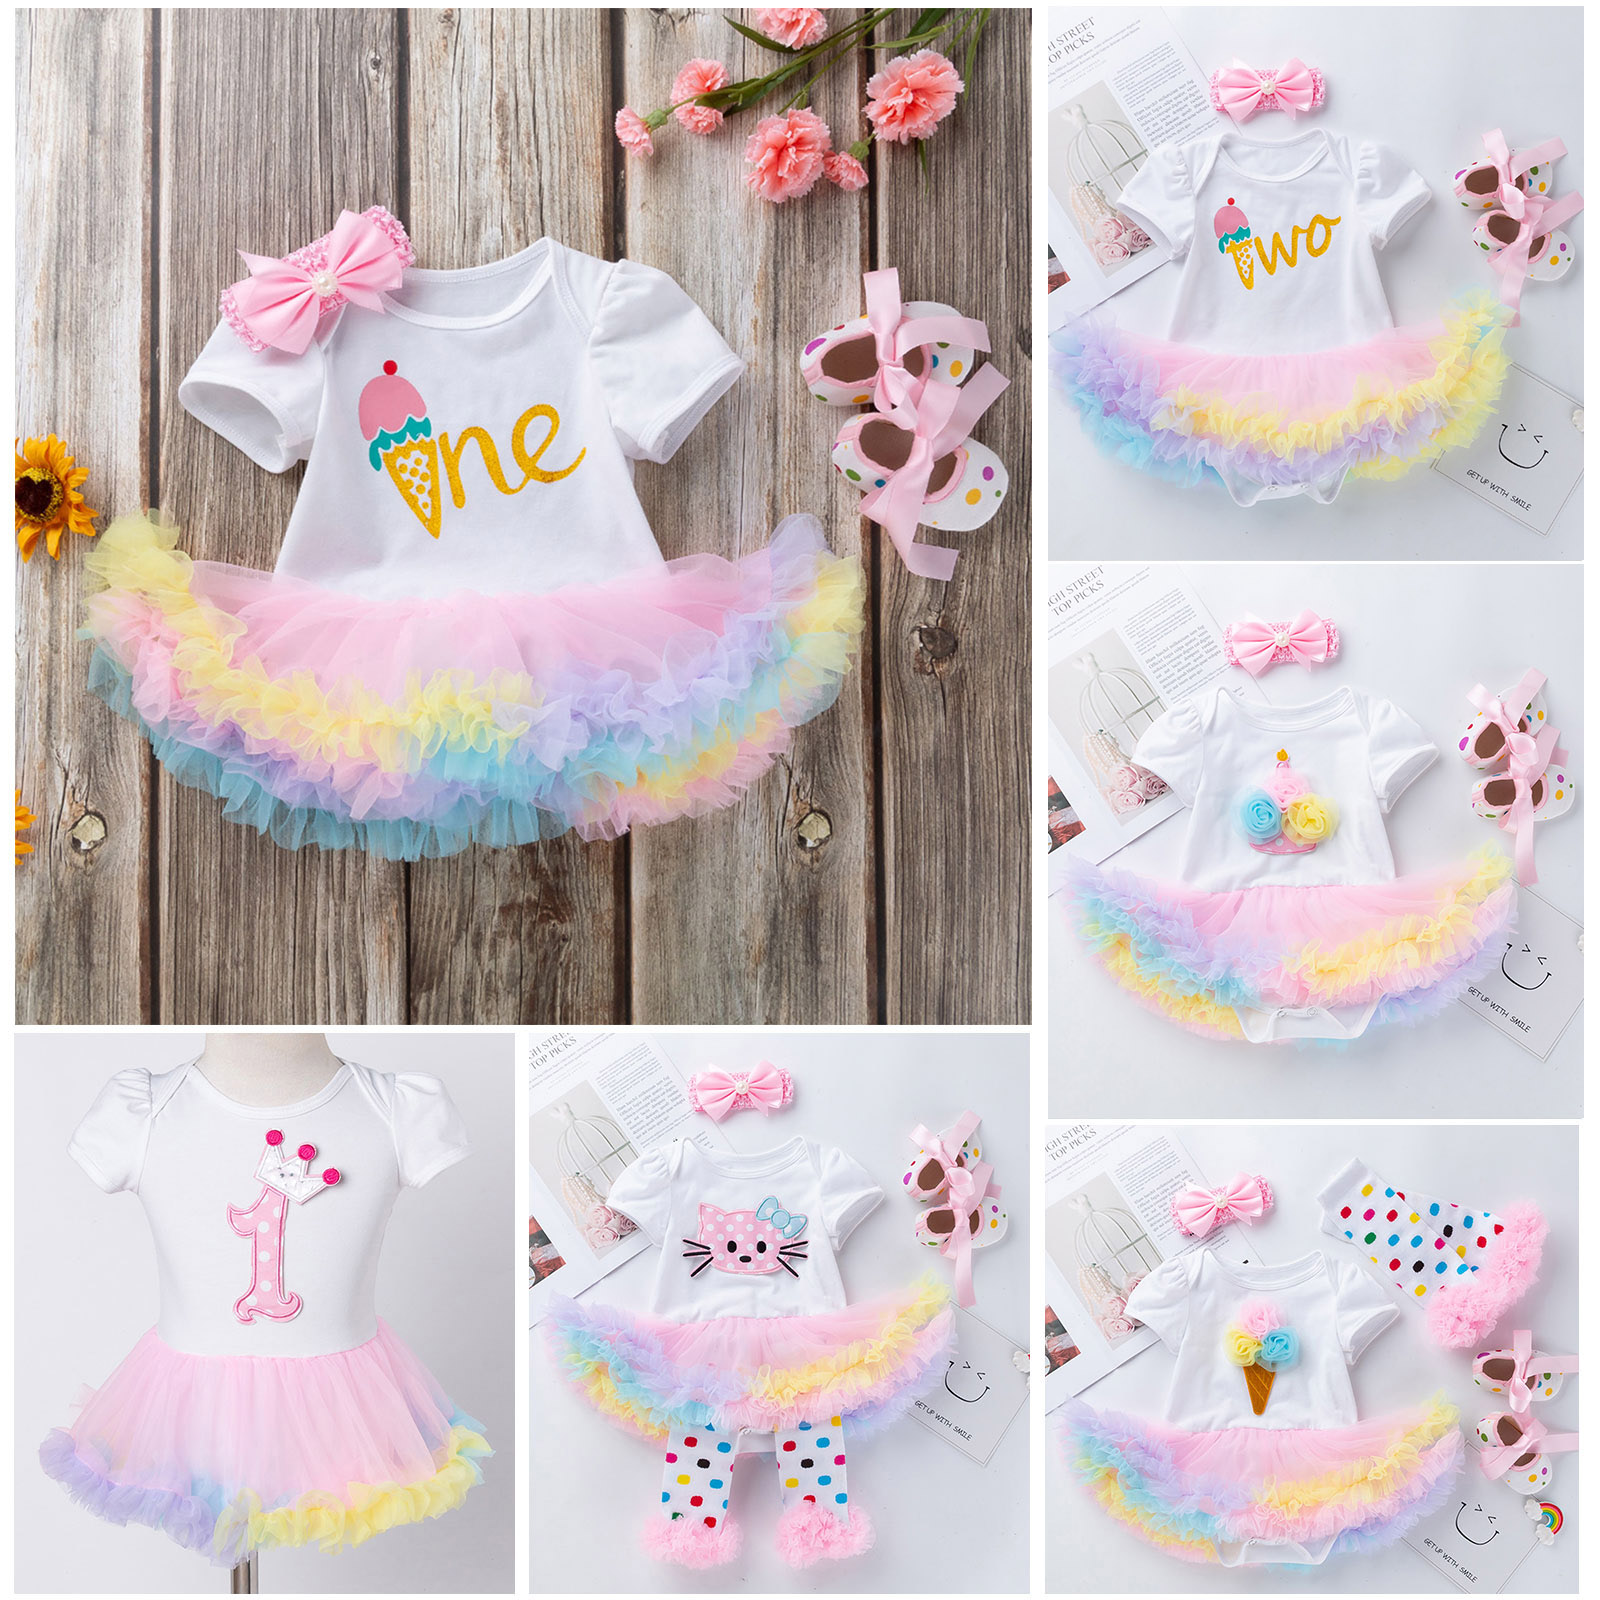 Newborn Baby Girls Clothes Shamrock Rompers Tutu Tulle Skirt and Headband Outfits Set